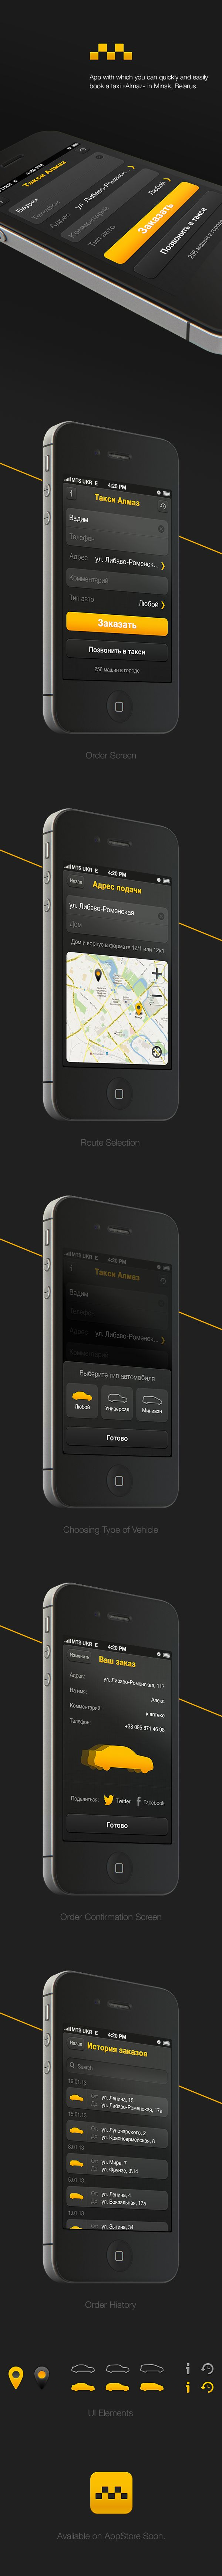 Taxi Almaz App by BLASTAROCKS , via Behance *** App with which you can quickly and easily book a taxi in Minsk, Belarus.